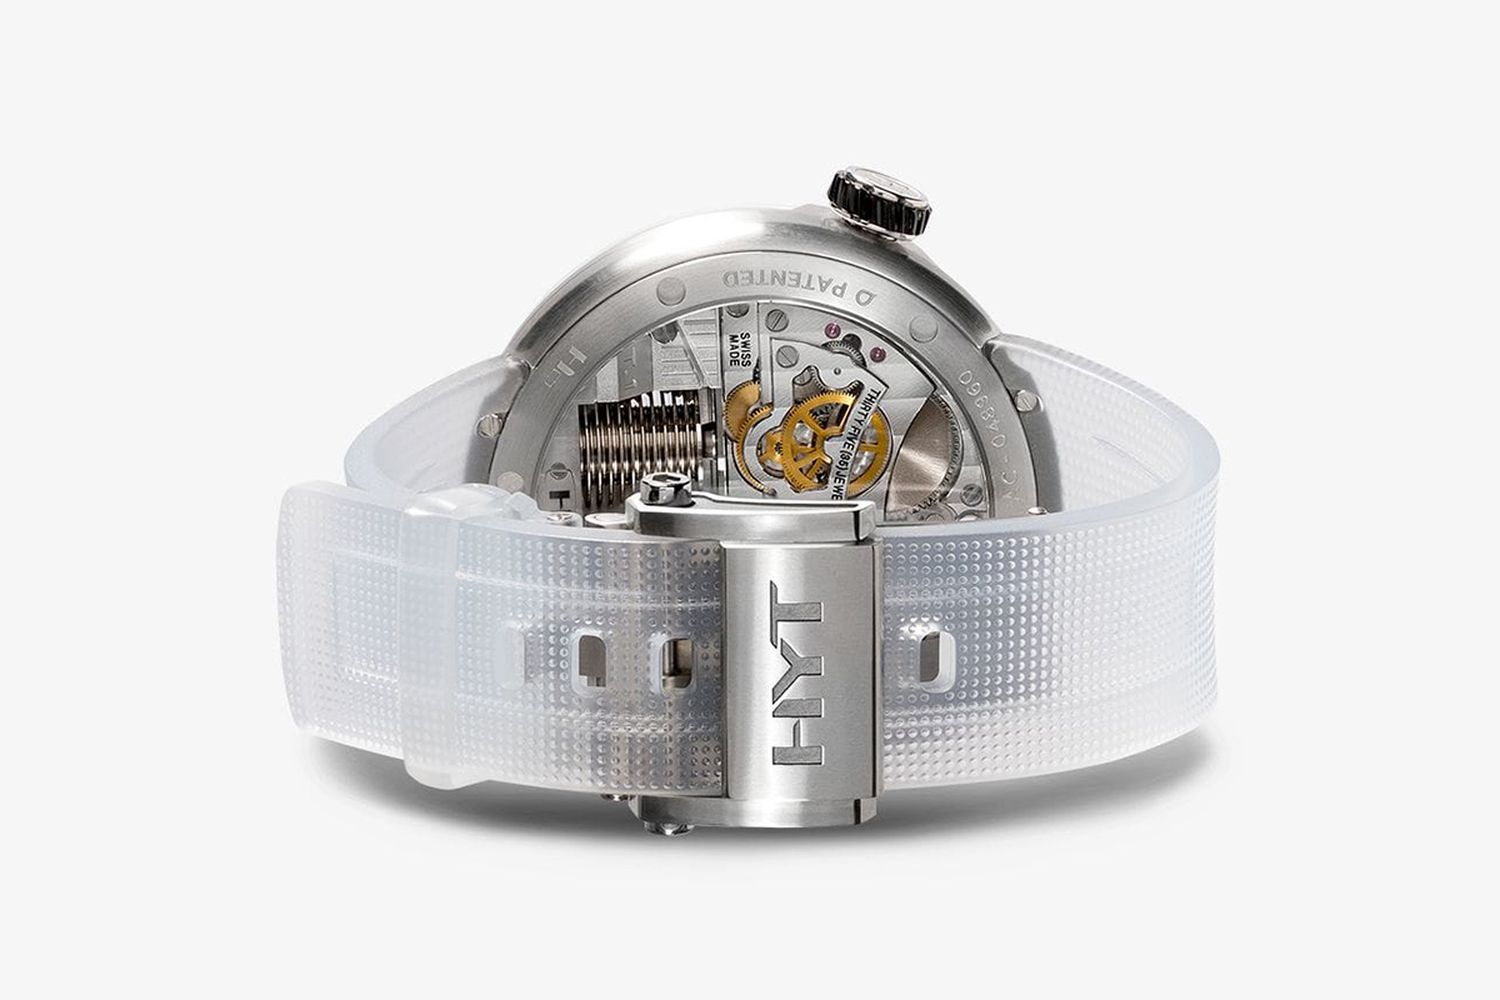 H0 Time Is Precious Watch